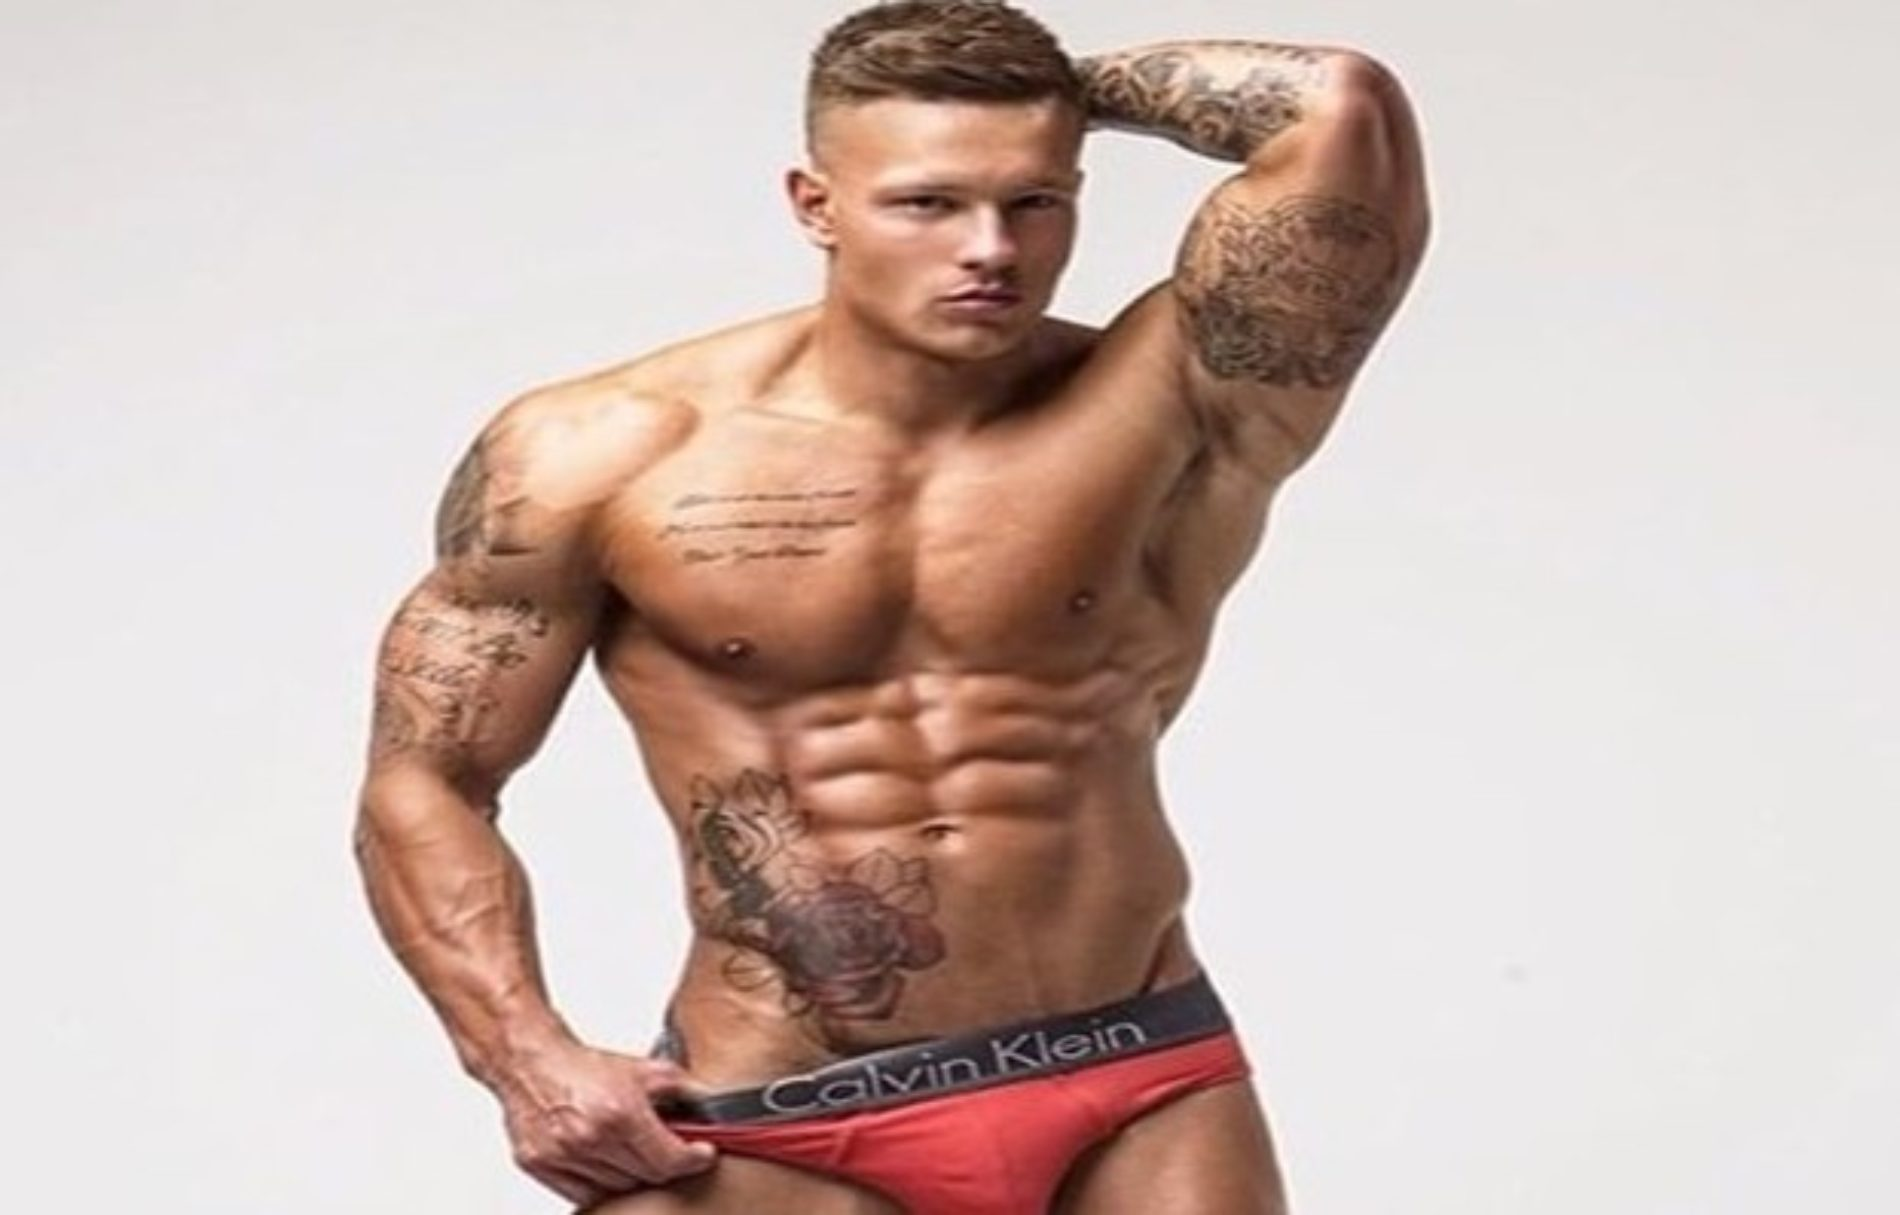 Reality Star Alex Bowen's Dick Pic May Have Broken The Internet